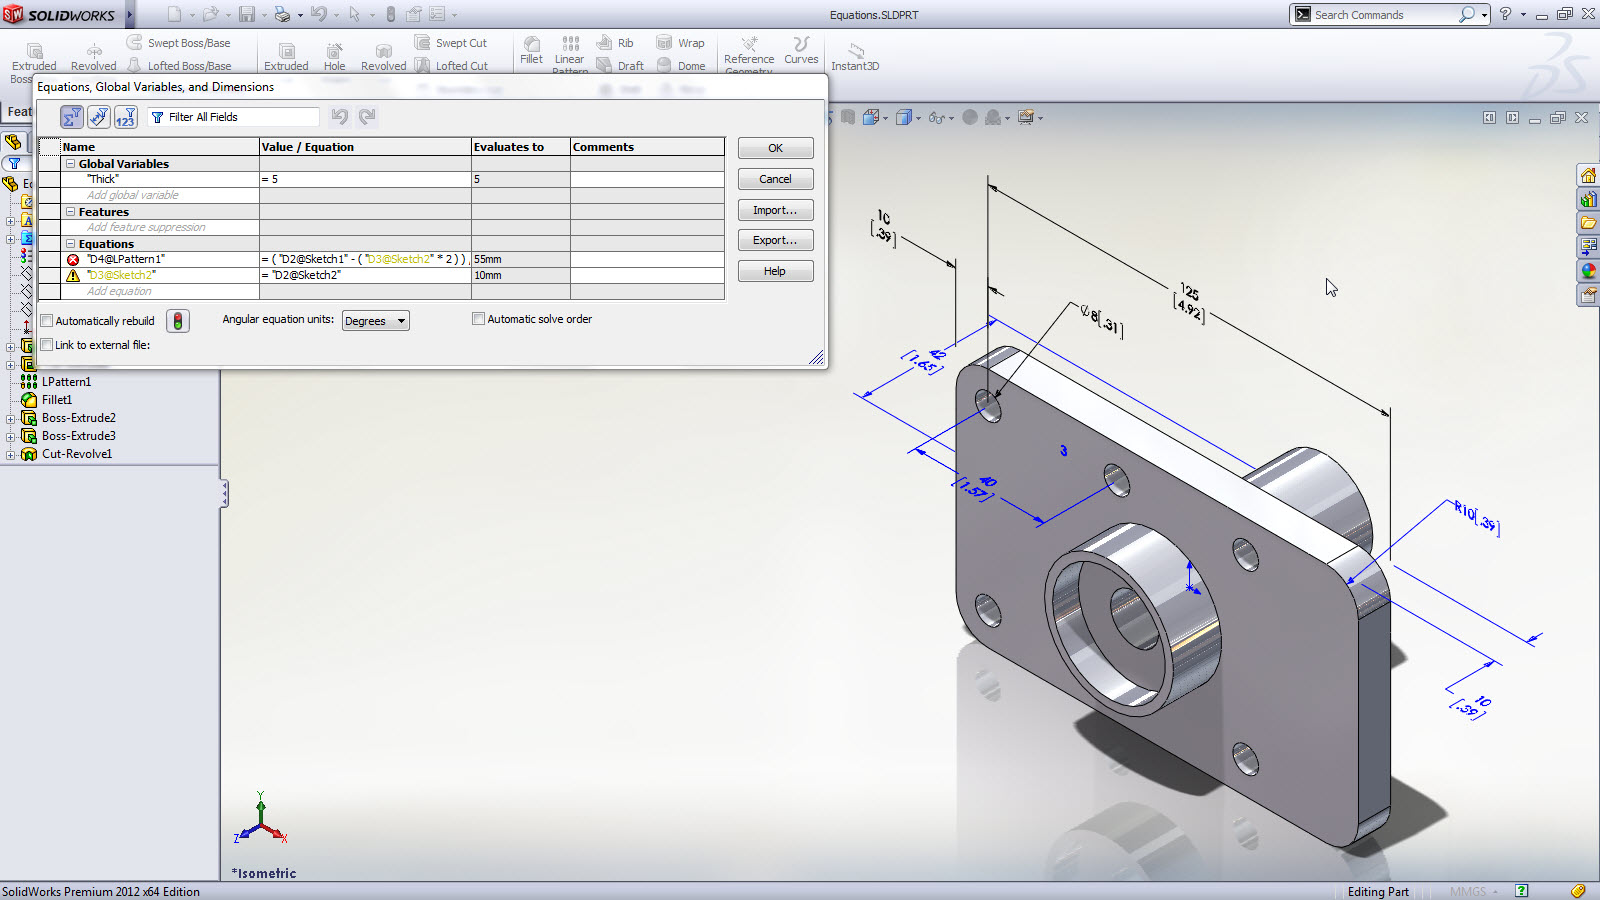 New in solidworks 2012 enhanced equation editing Simple cad online